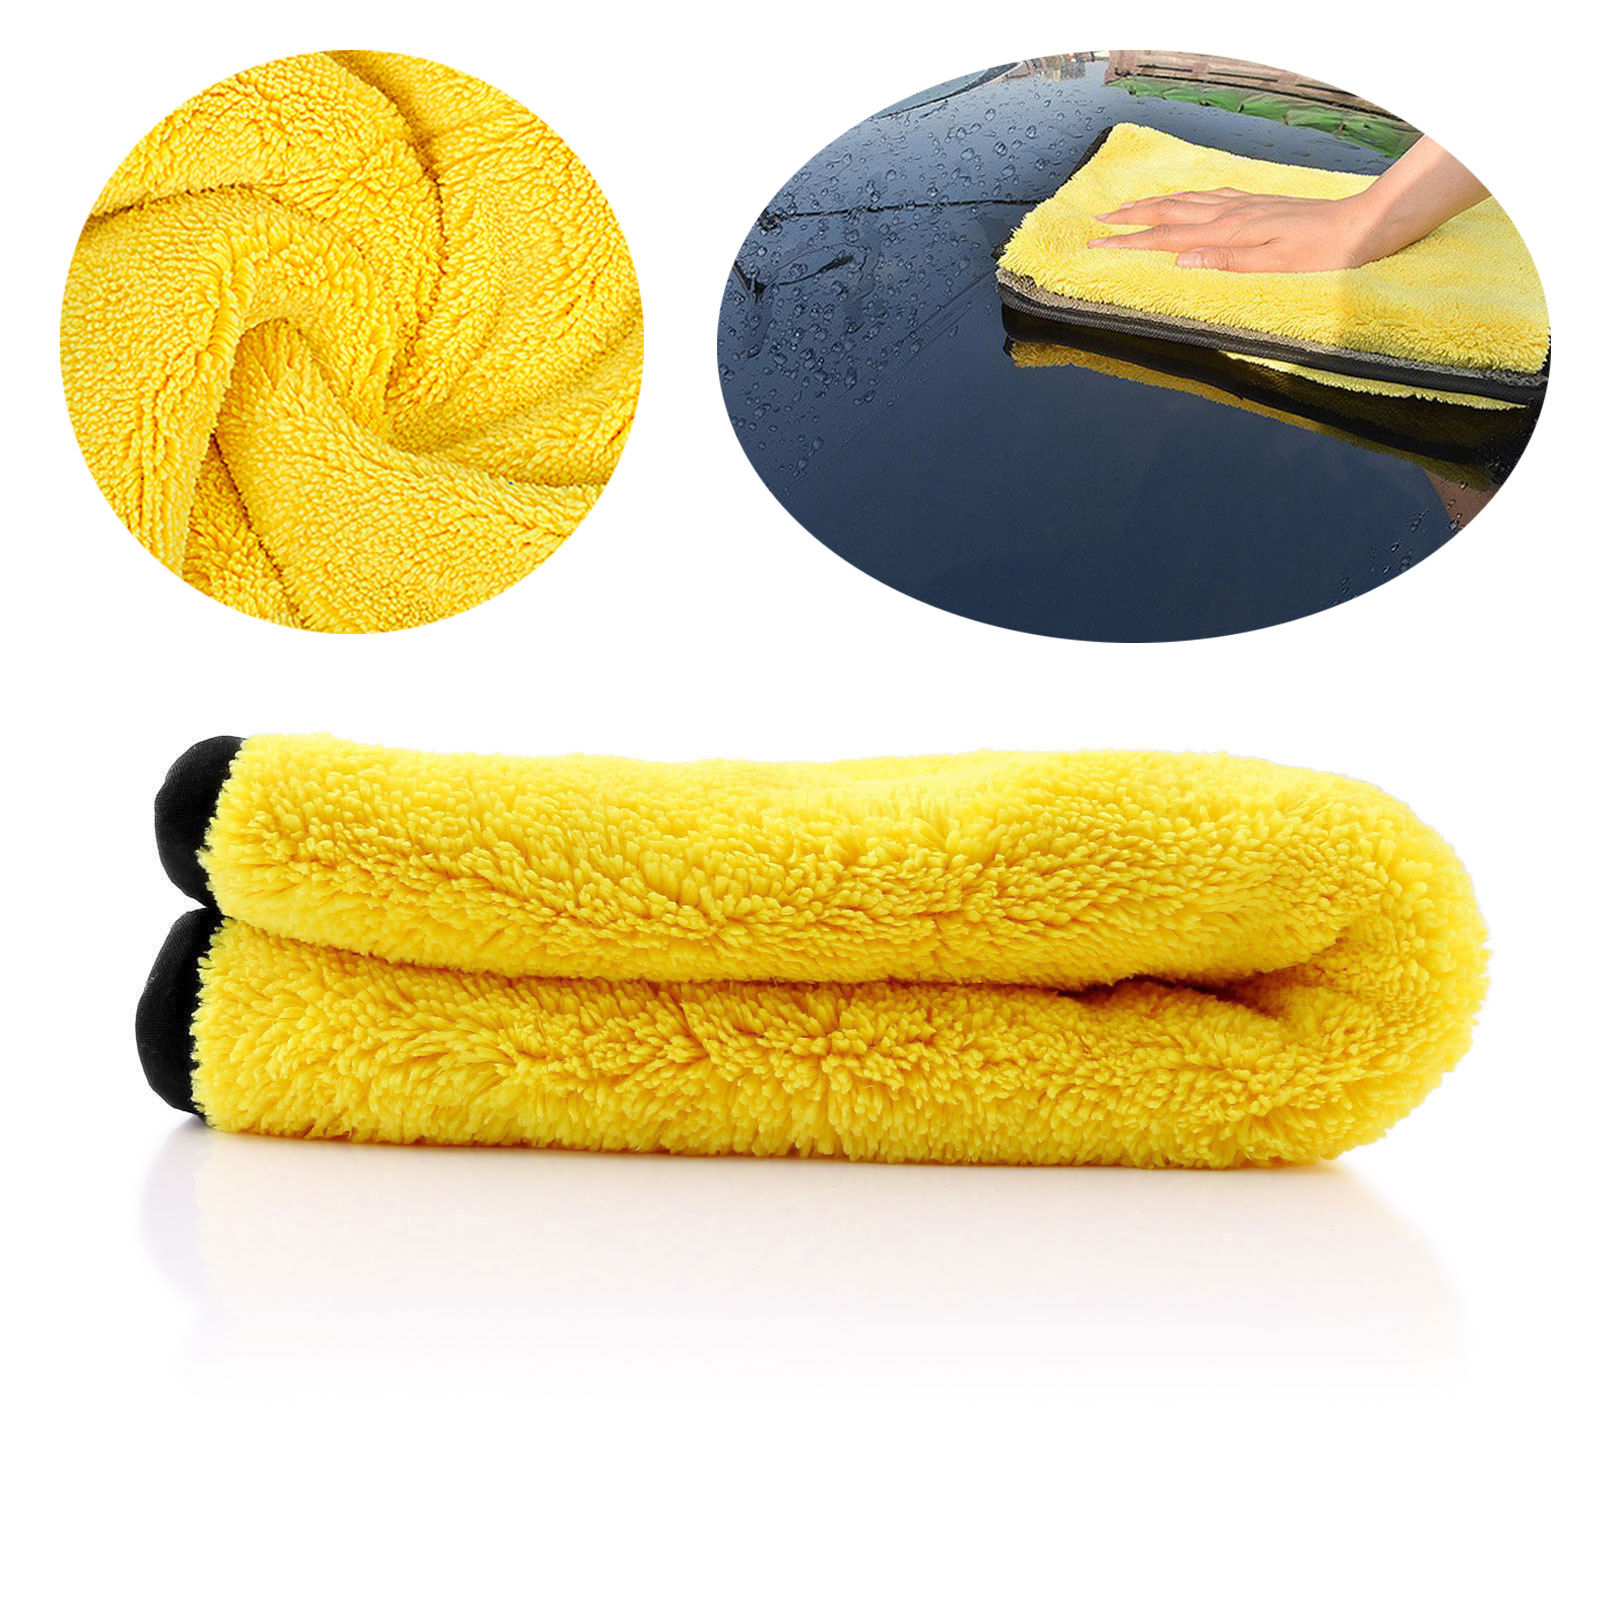 4 Size Super Absorbent Car Wash Cloth Microfiber Towel Cleaning Drying Cloths Rag Detailing Car Towel Car Care Polishing 18